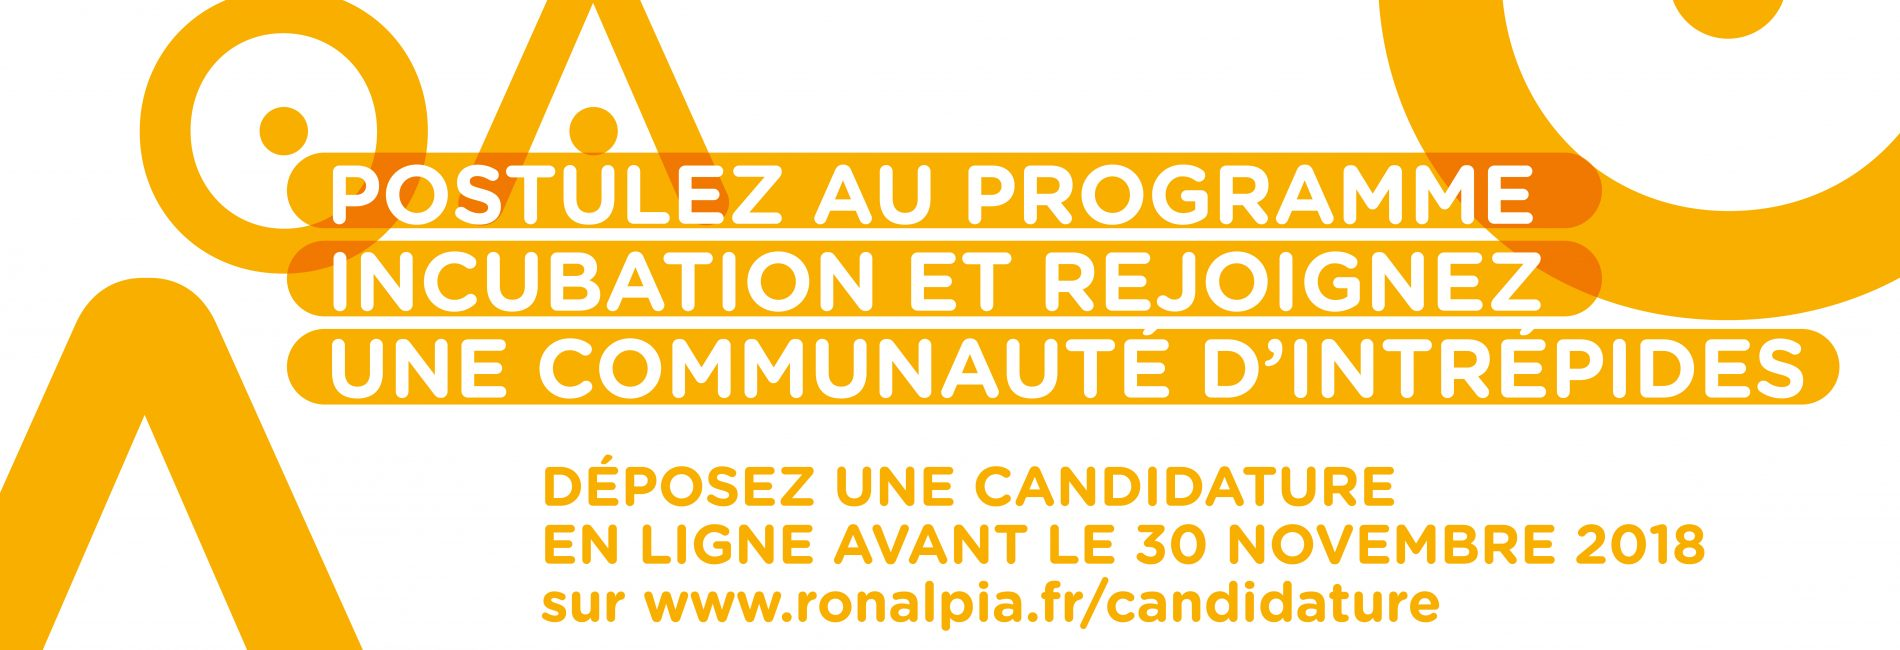 Home page site ronalpia - appel a candidatures incubation